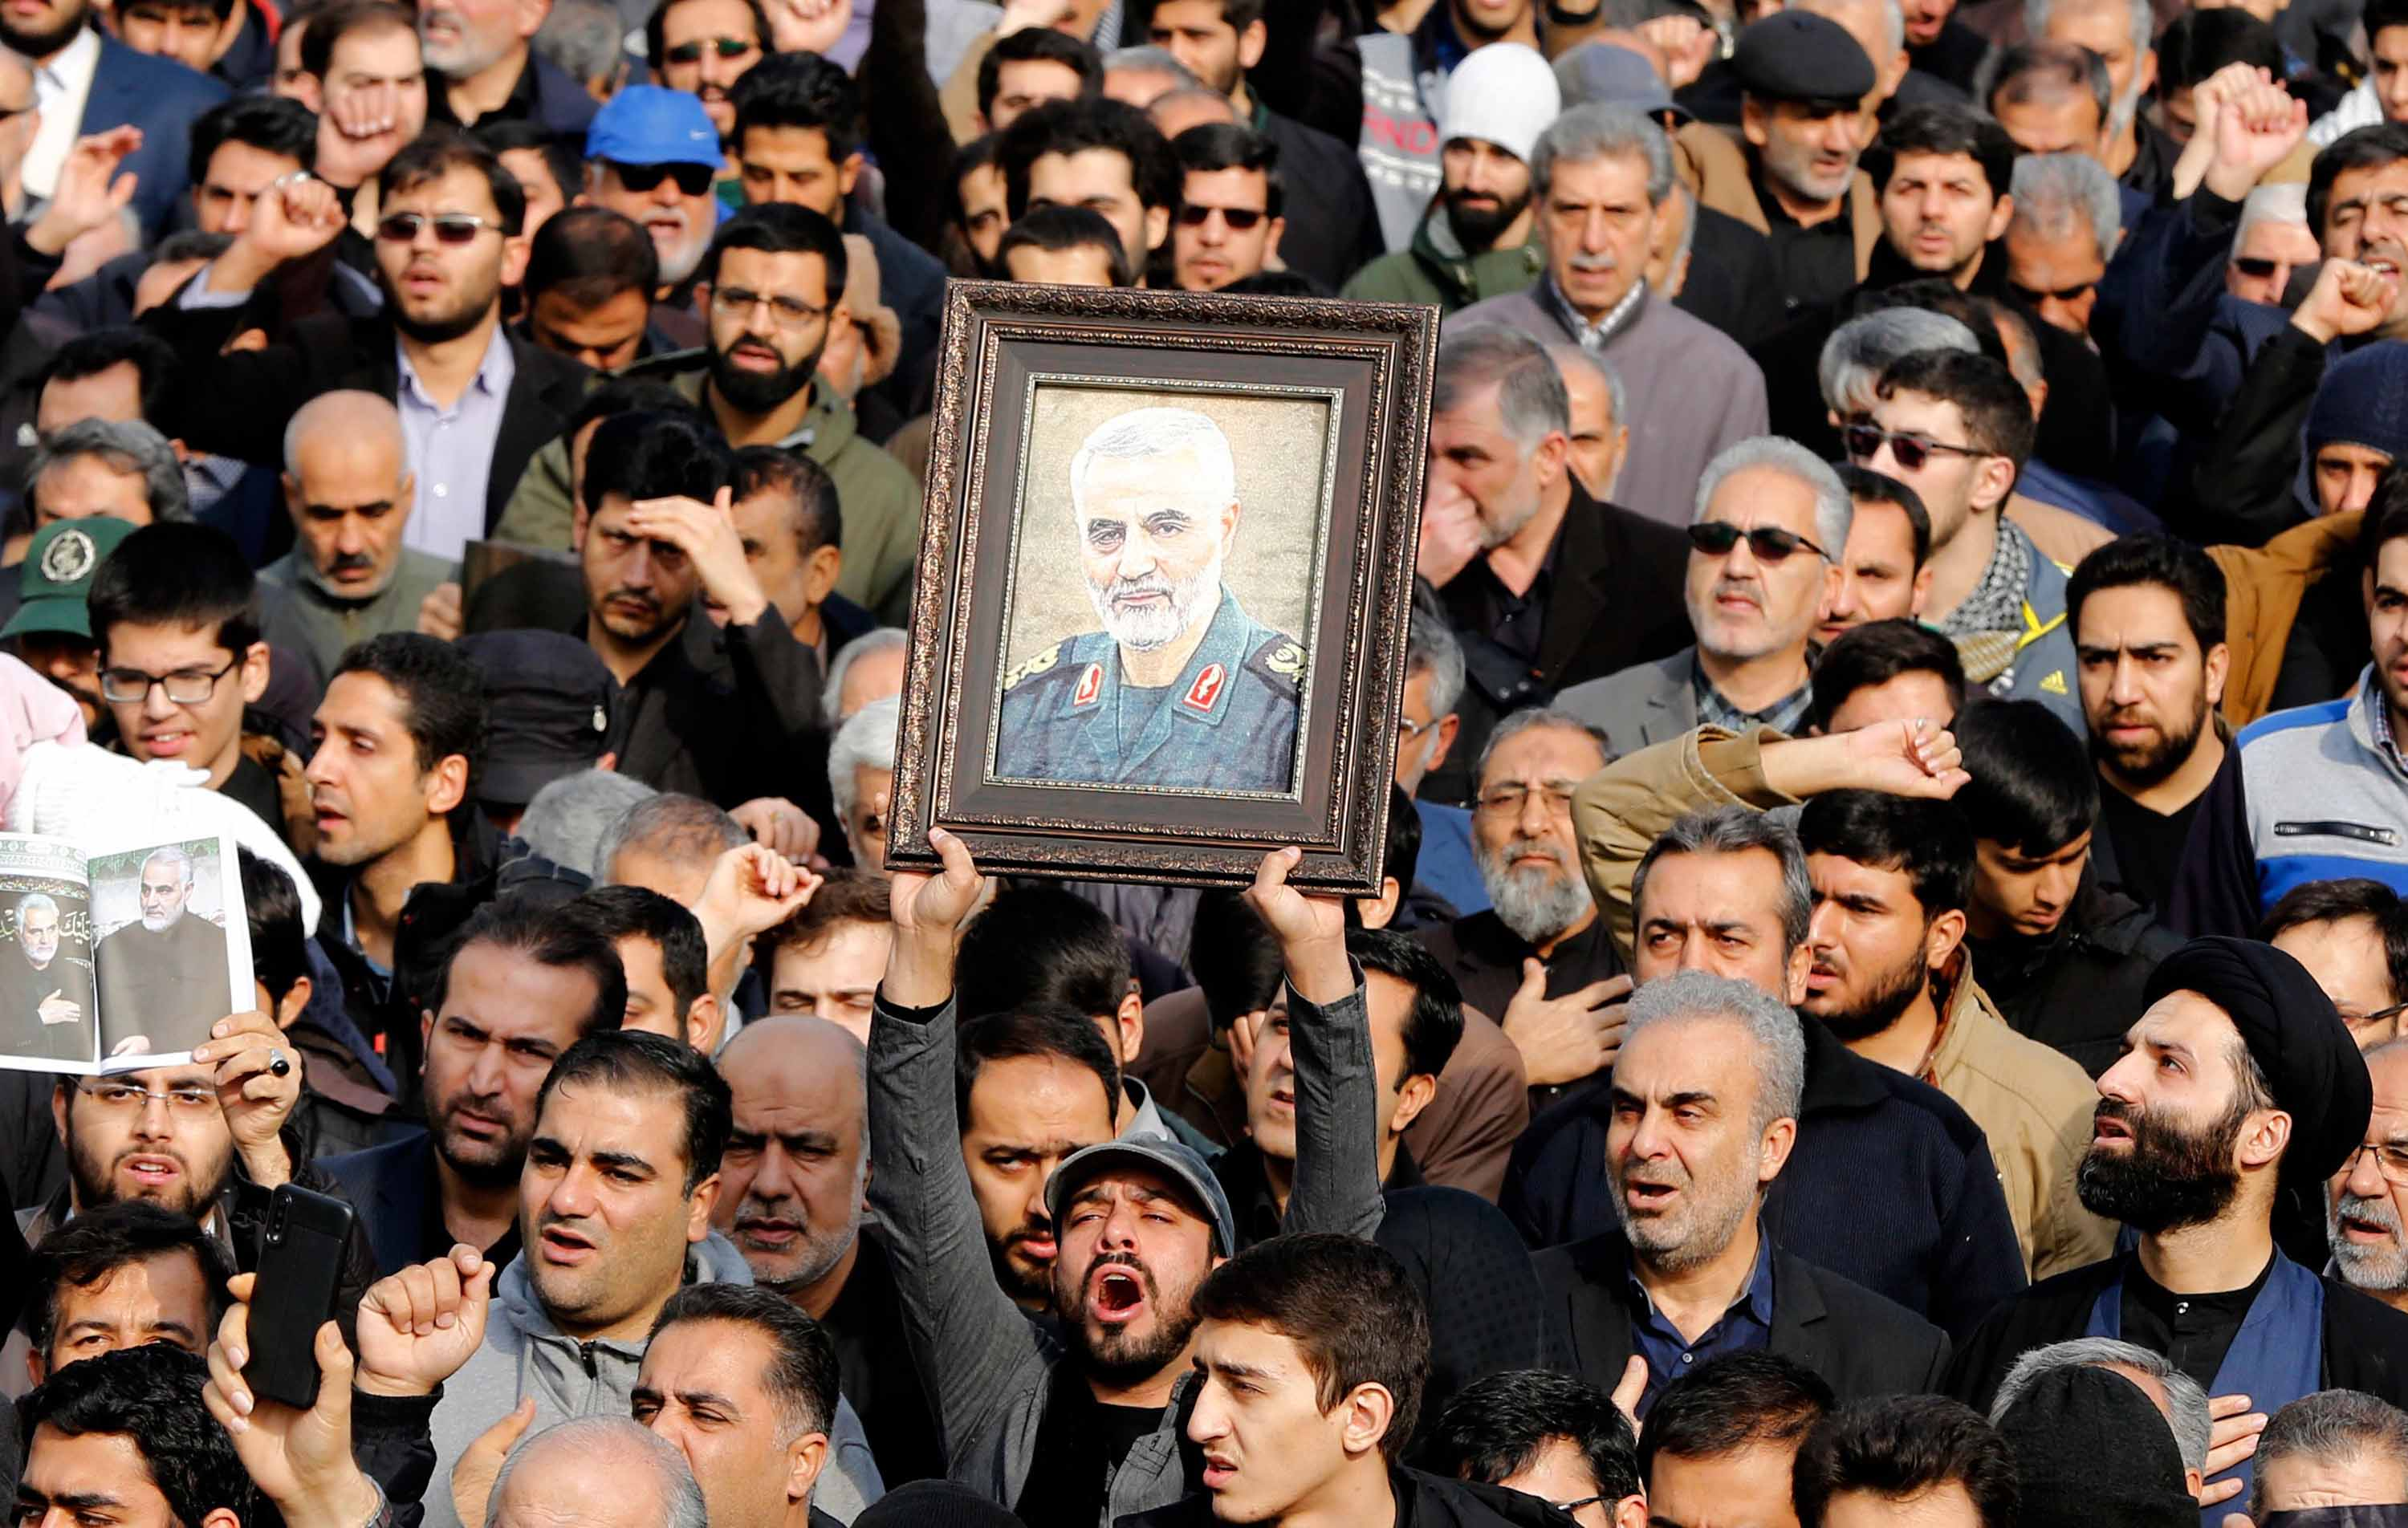 Thousands of Iranians take to the streets of Tehran on Friday to mourn the death of Soleimani. Credit: Abedin/Taherkenareh/EPA-EFE/Shutterstock.